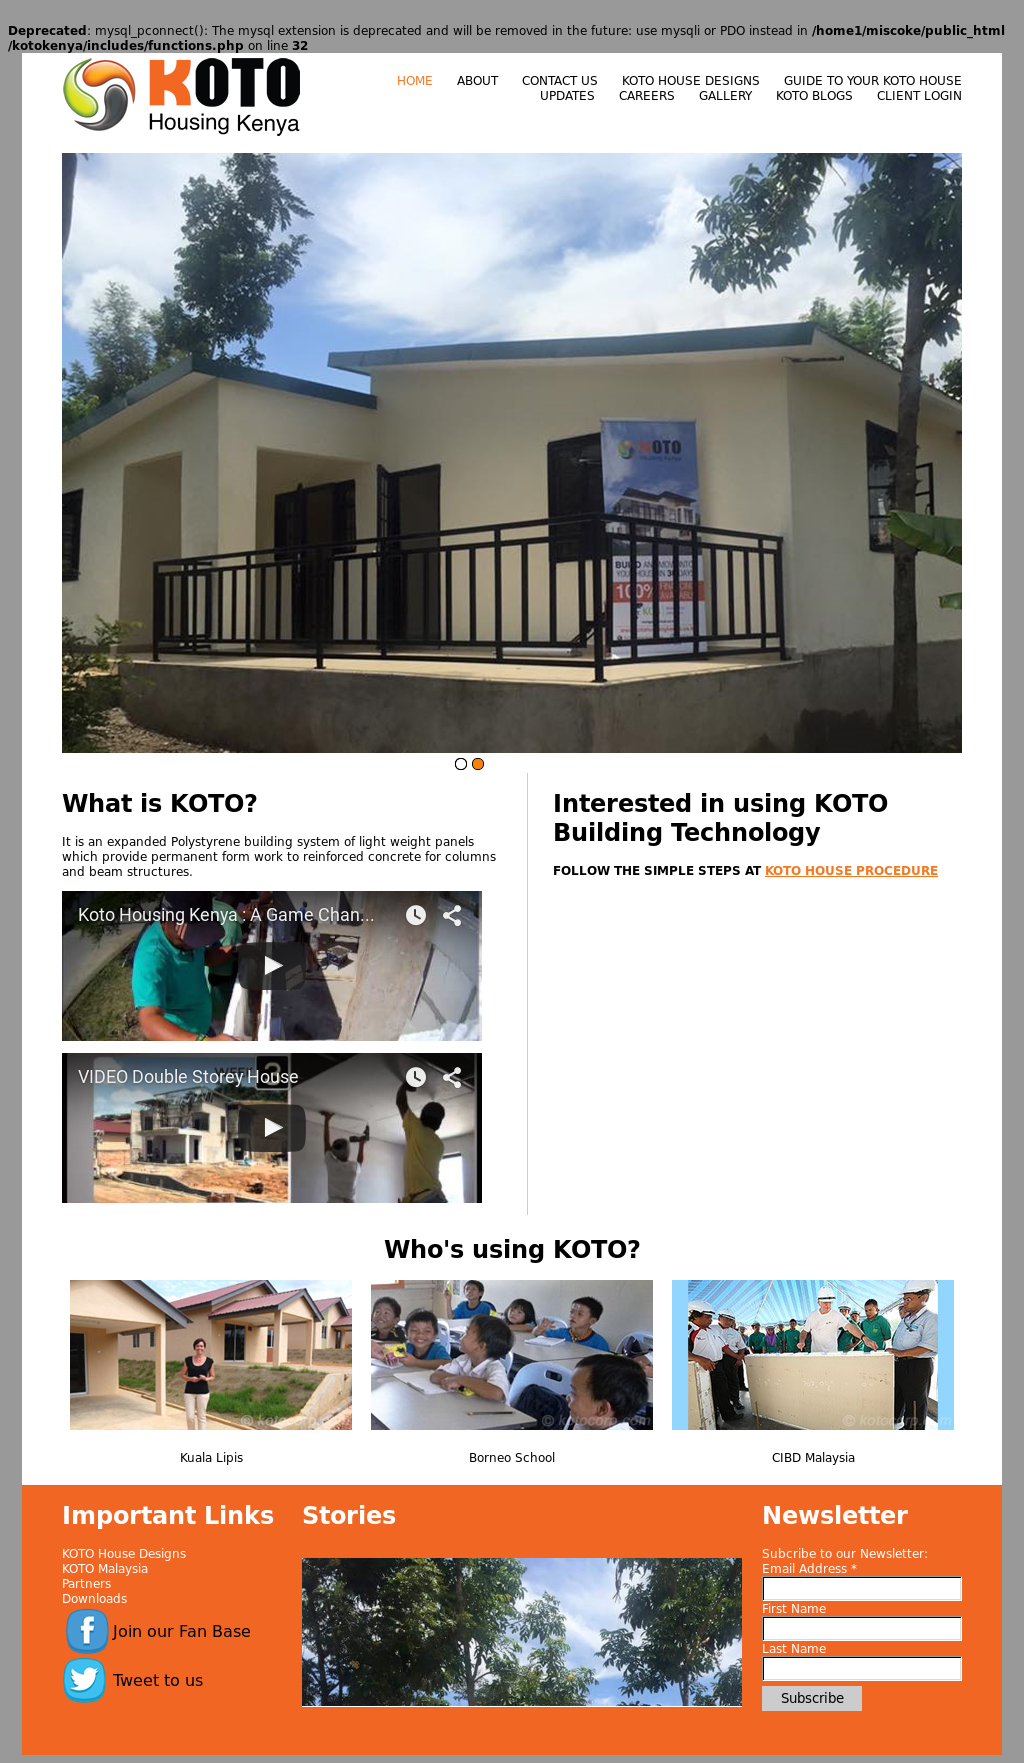 Koto Housing Kenya Compeors, Revenue and Employees - Owler ... on brunei home designs, poland home designs, english home designs, puerto rico home designs, pacific island home designs, georgia home designs, ghana home designs, switzerland home designs, germany home designs, philippines home designs, egypt home designs, new zealand home designs, bahamas home designs, uae home designs, nigeria home designs, bermuda home designs, qatar home designs, kenyan house designs, small home designs, guam home designs,